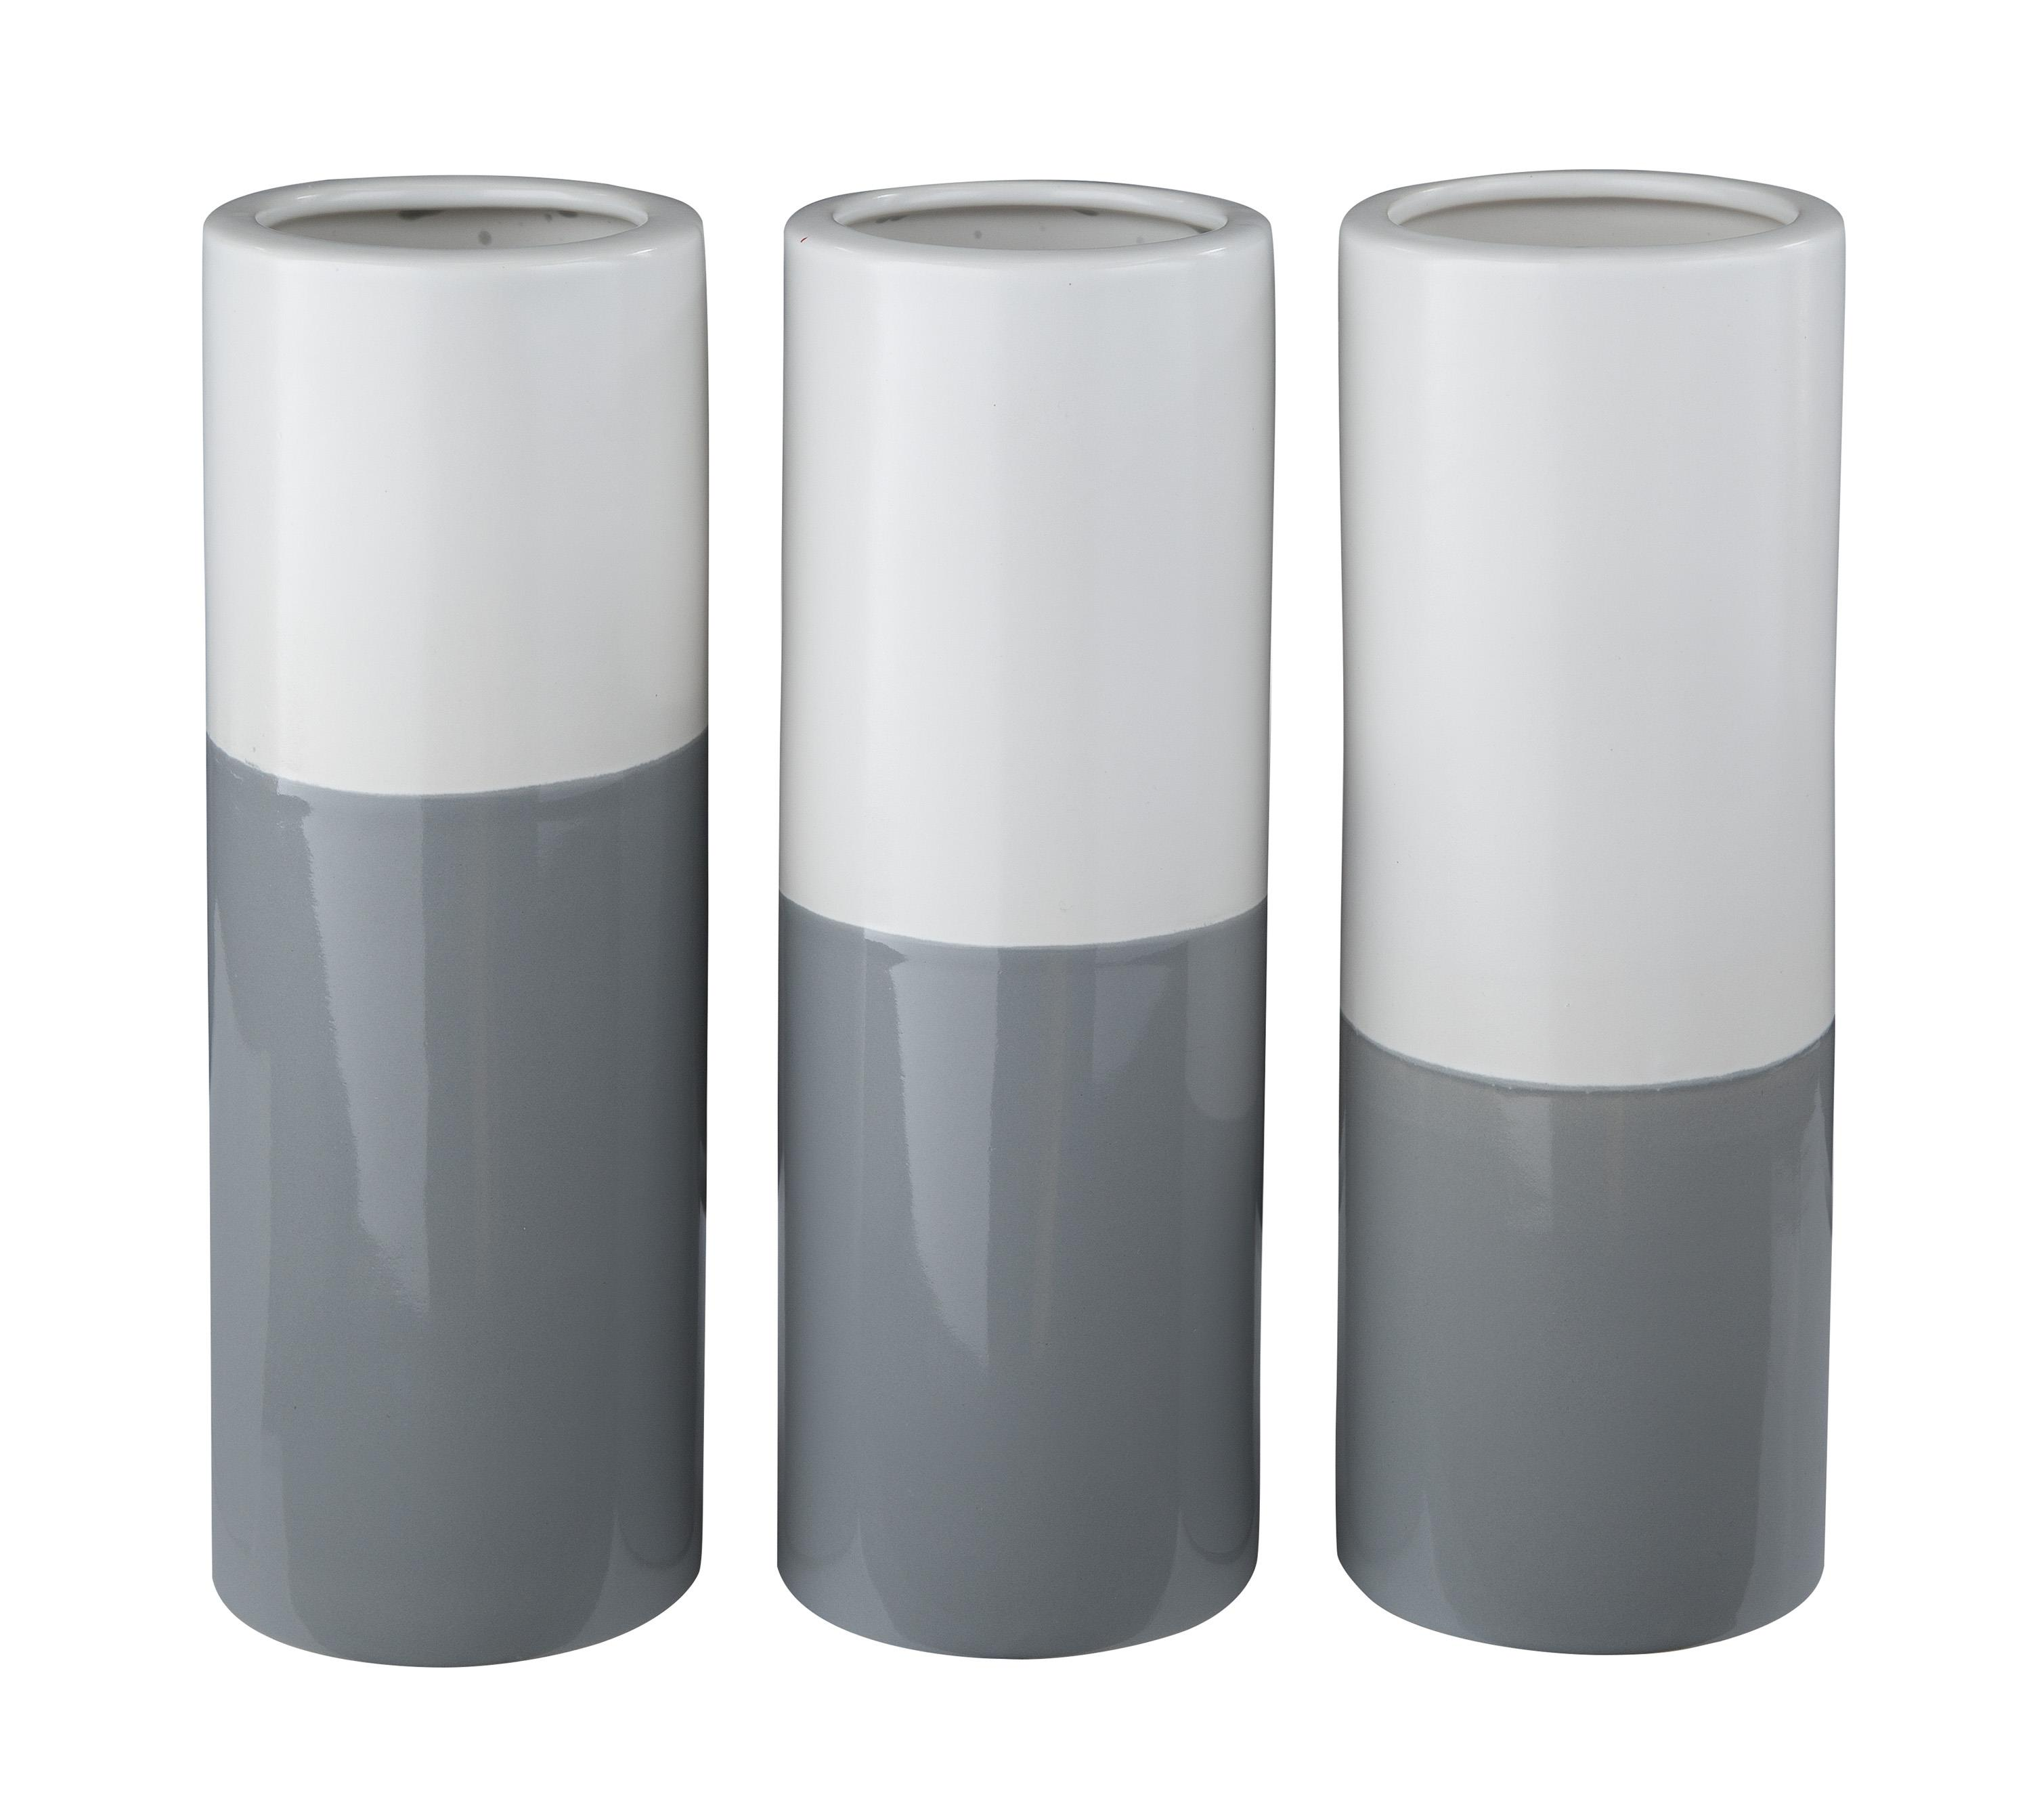 Signature Design by Ashley Accents Dalal Gray/White Vases (Set of 3) - Item Number: A2000165V